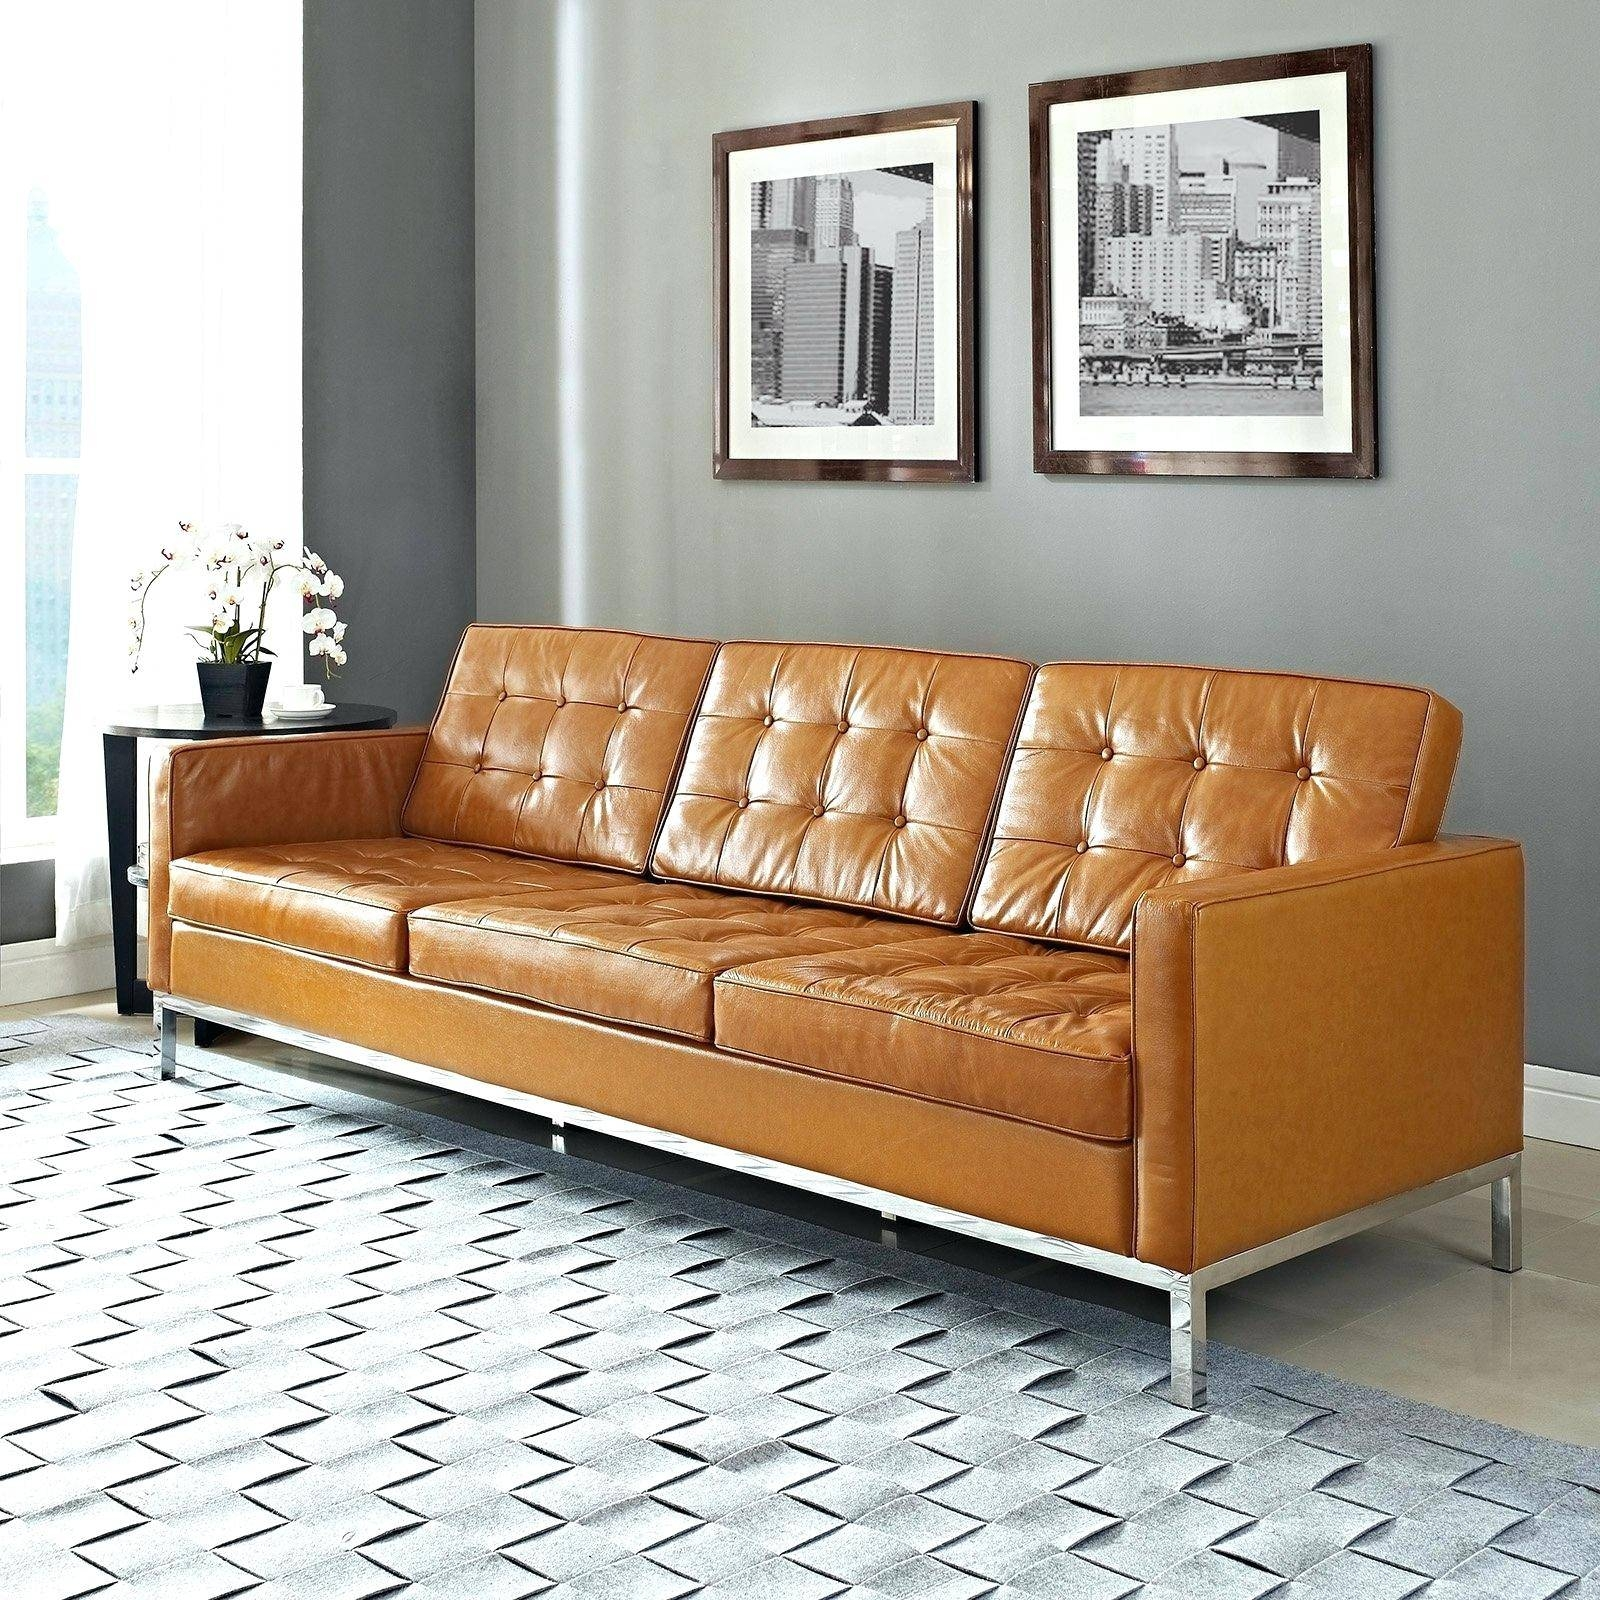 Leather Sofa Sectional With Chaise Tan Sofas Gray – Lenspay intended for Light Tan Leather Sofas (Image 15 of 30)